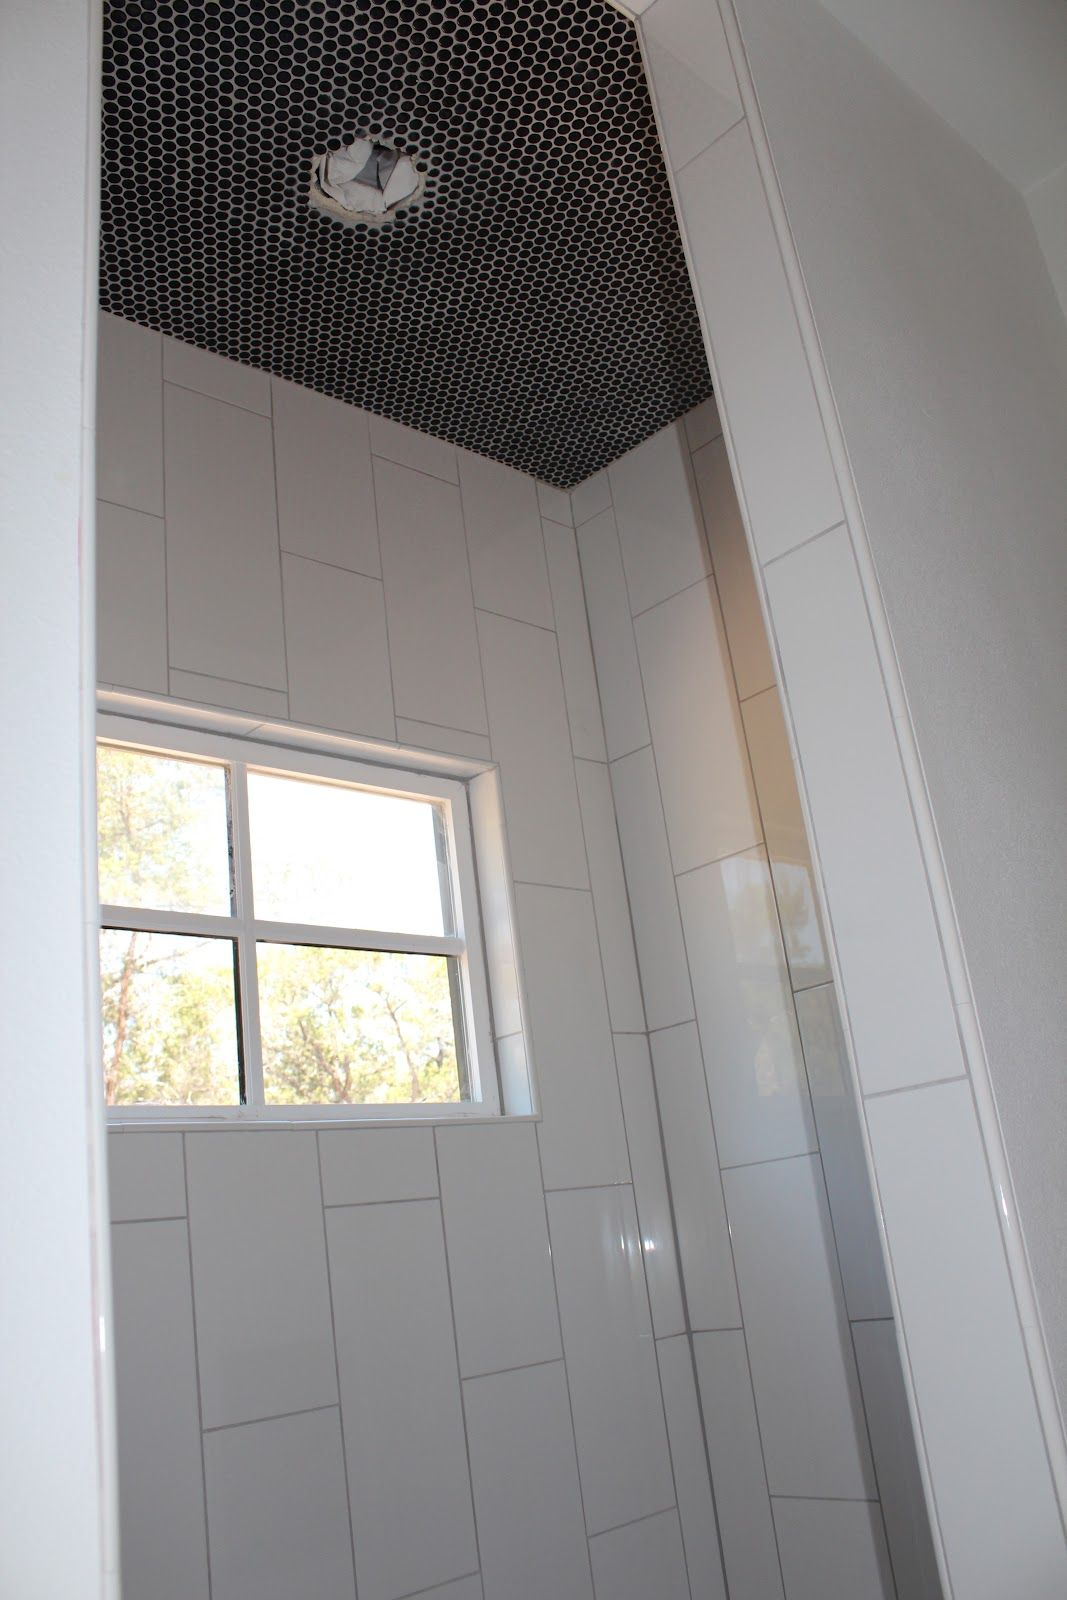 Jvw Home Project Updates Small Bathroom Remodel Designs White Tile Shower Vertical Shower Tile